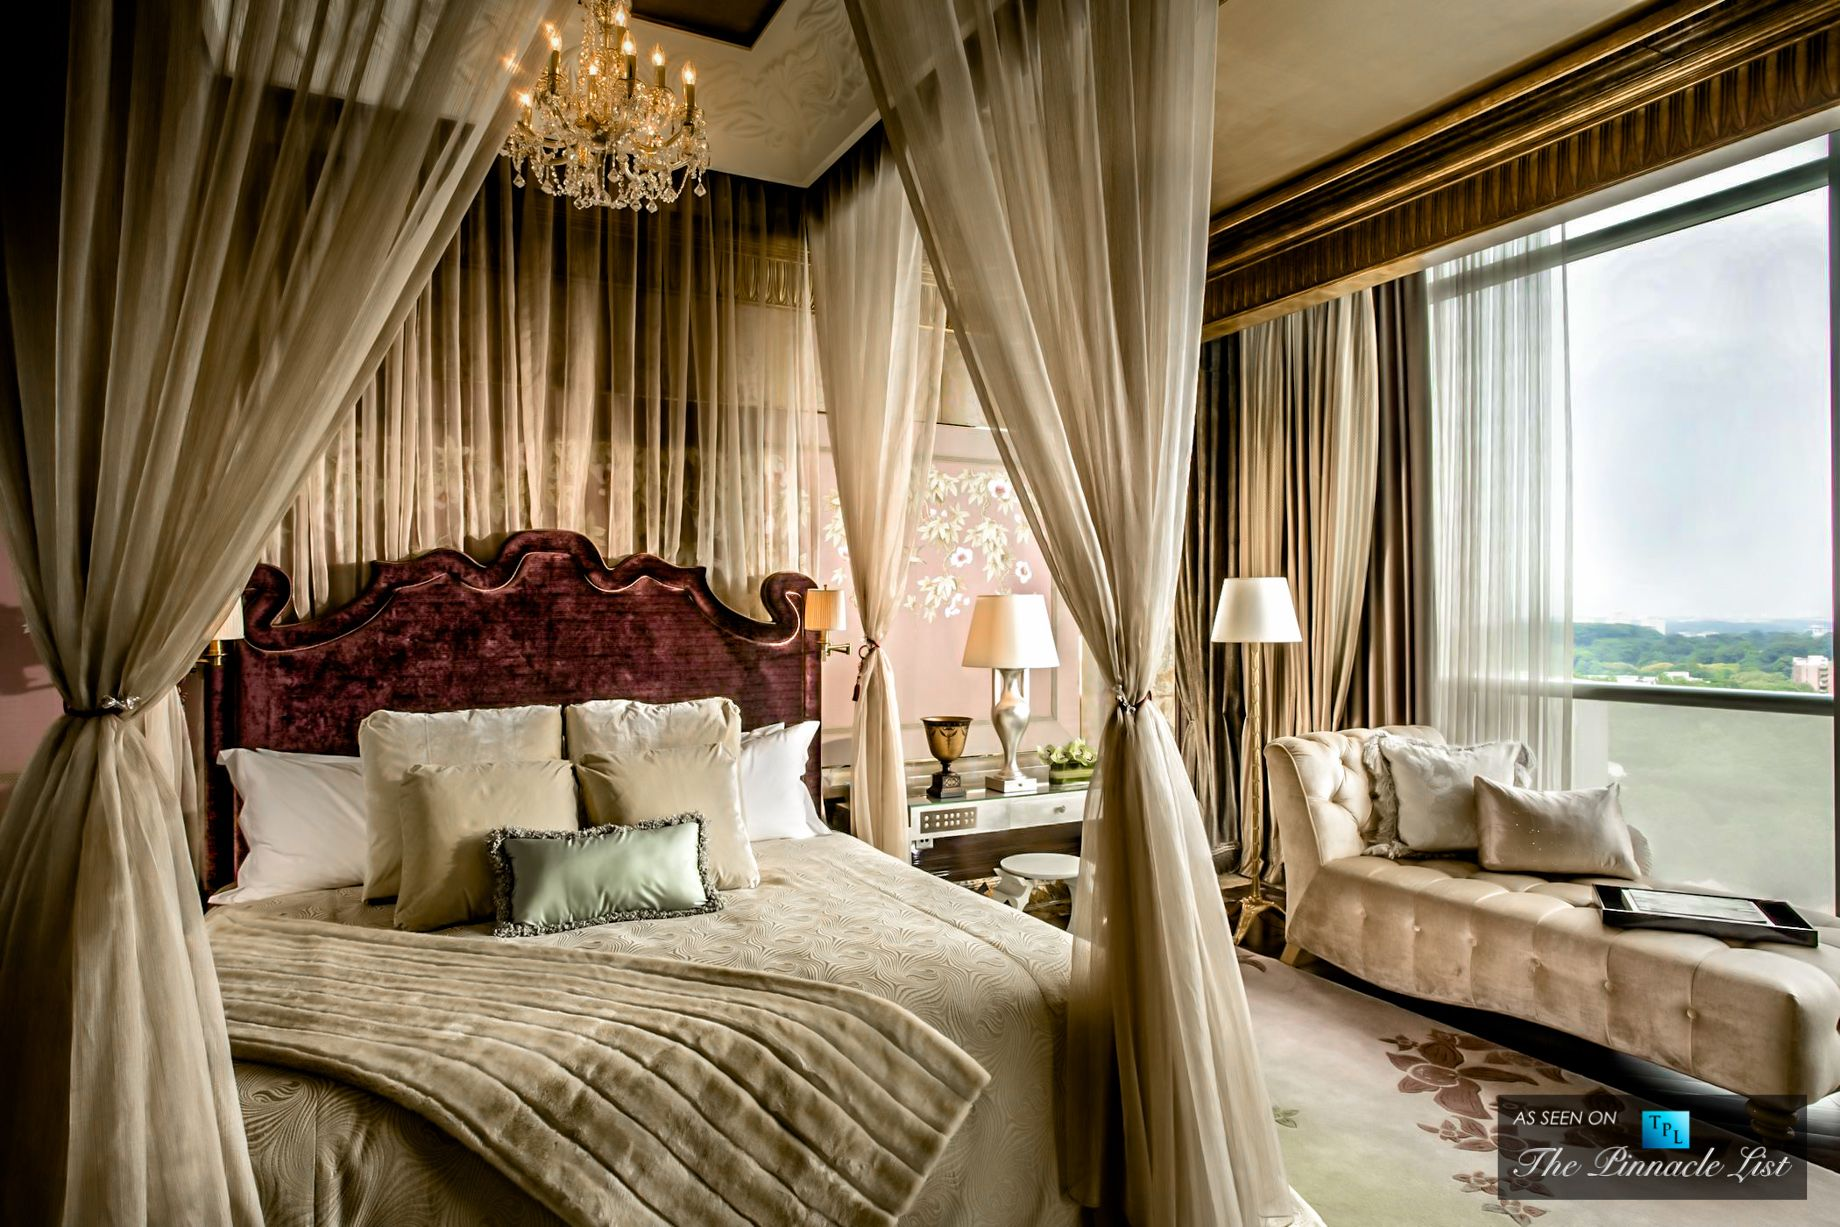 st. regis luxury hotel – singapore – presidential suite bedroom